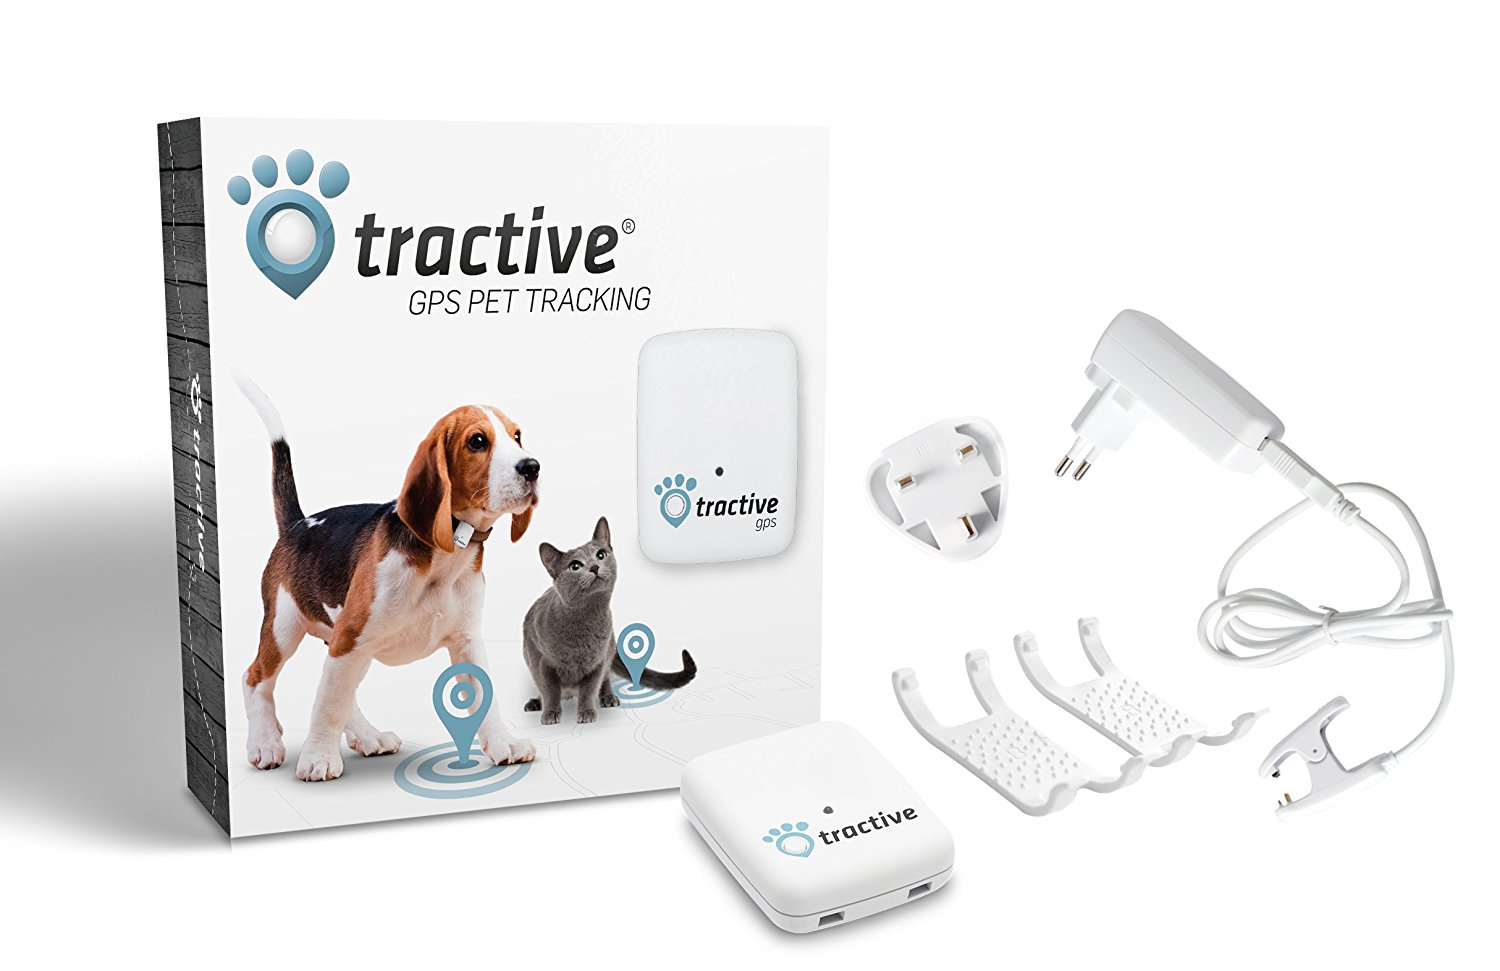 Tractive Gps Dog Tracker Review 187 Quality Dog Fence